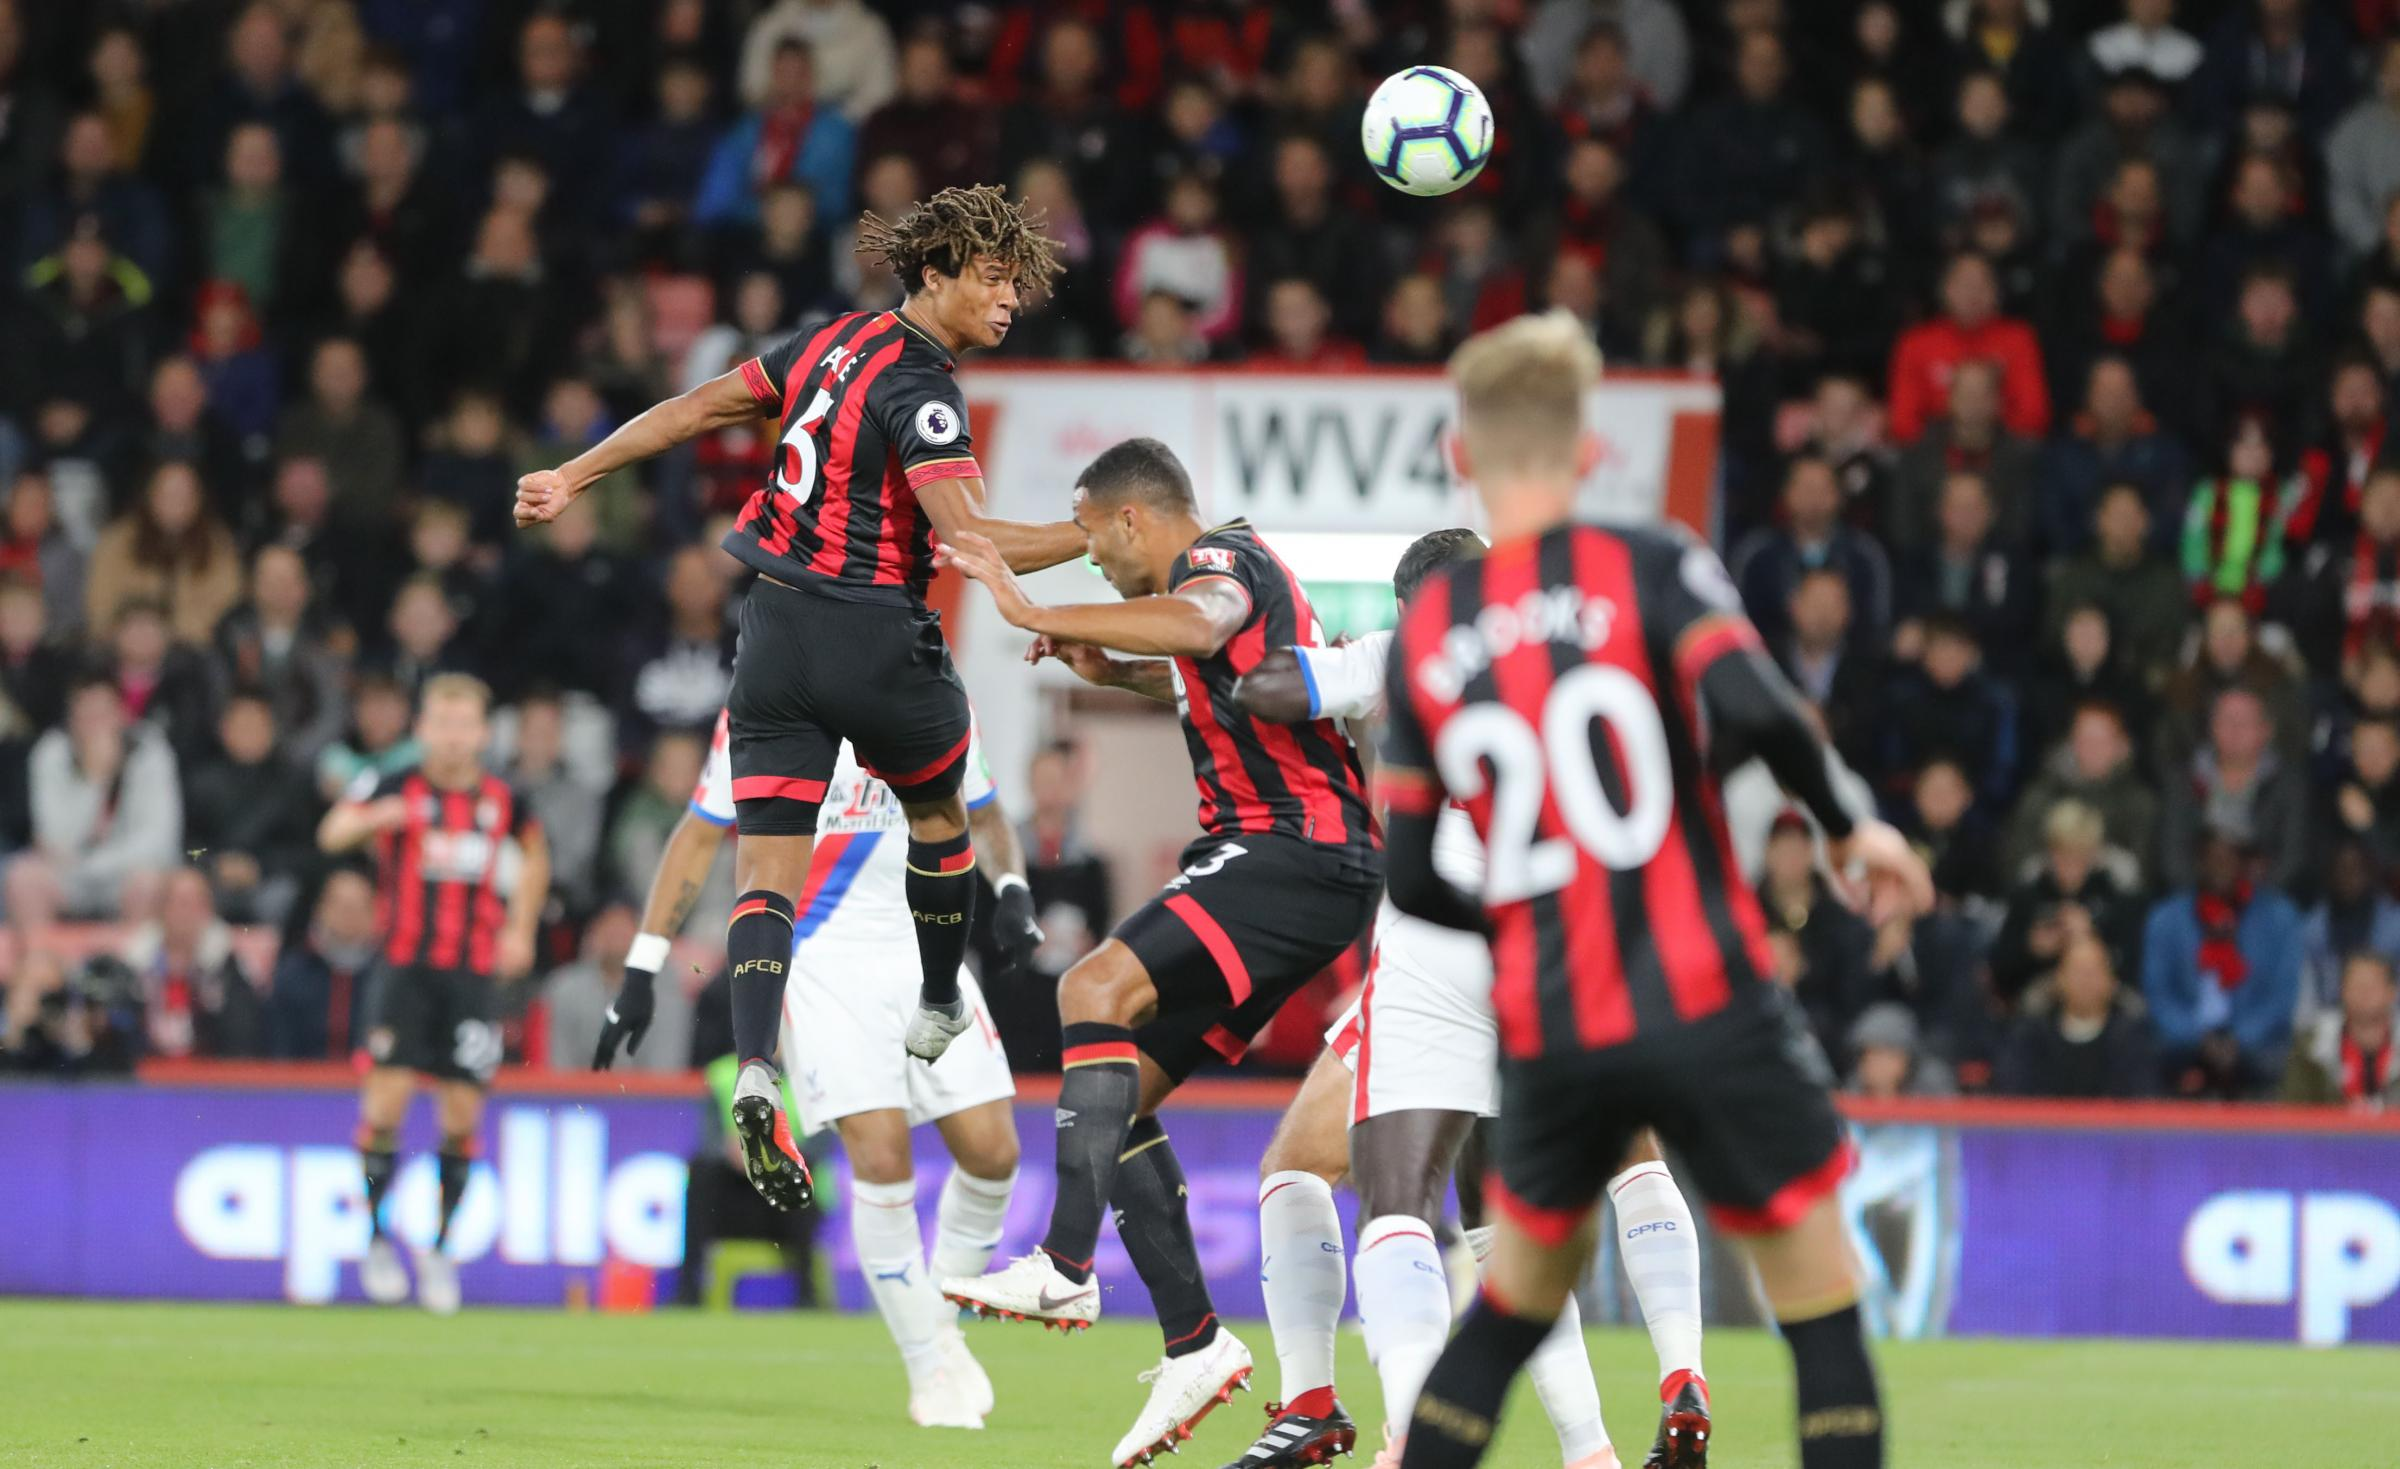 Bournemouth defender Ake: Of course Tottenham and Man Utd are big clubs